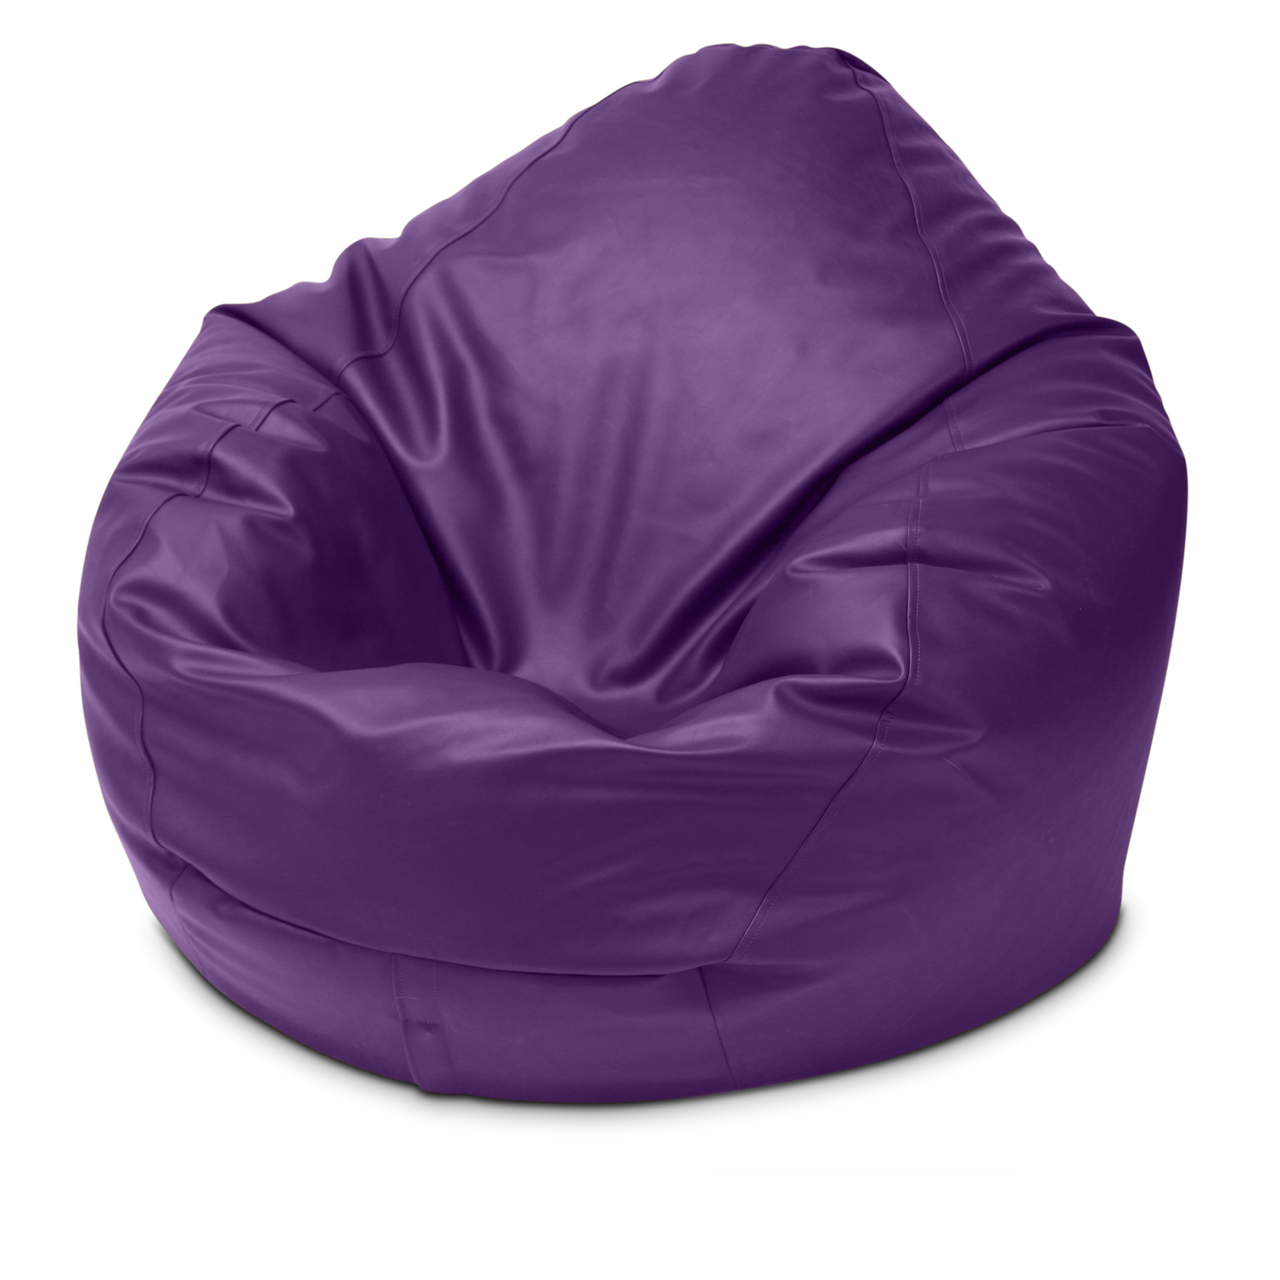 Classic King Size Bean Bag in grape